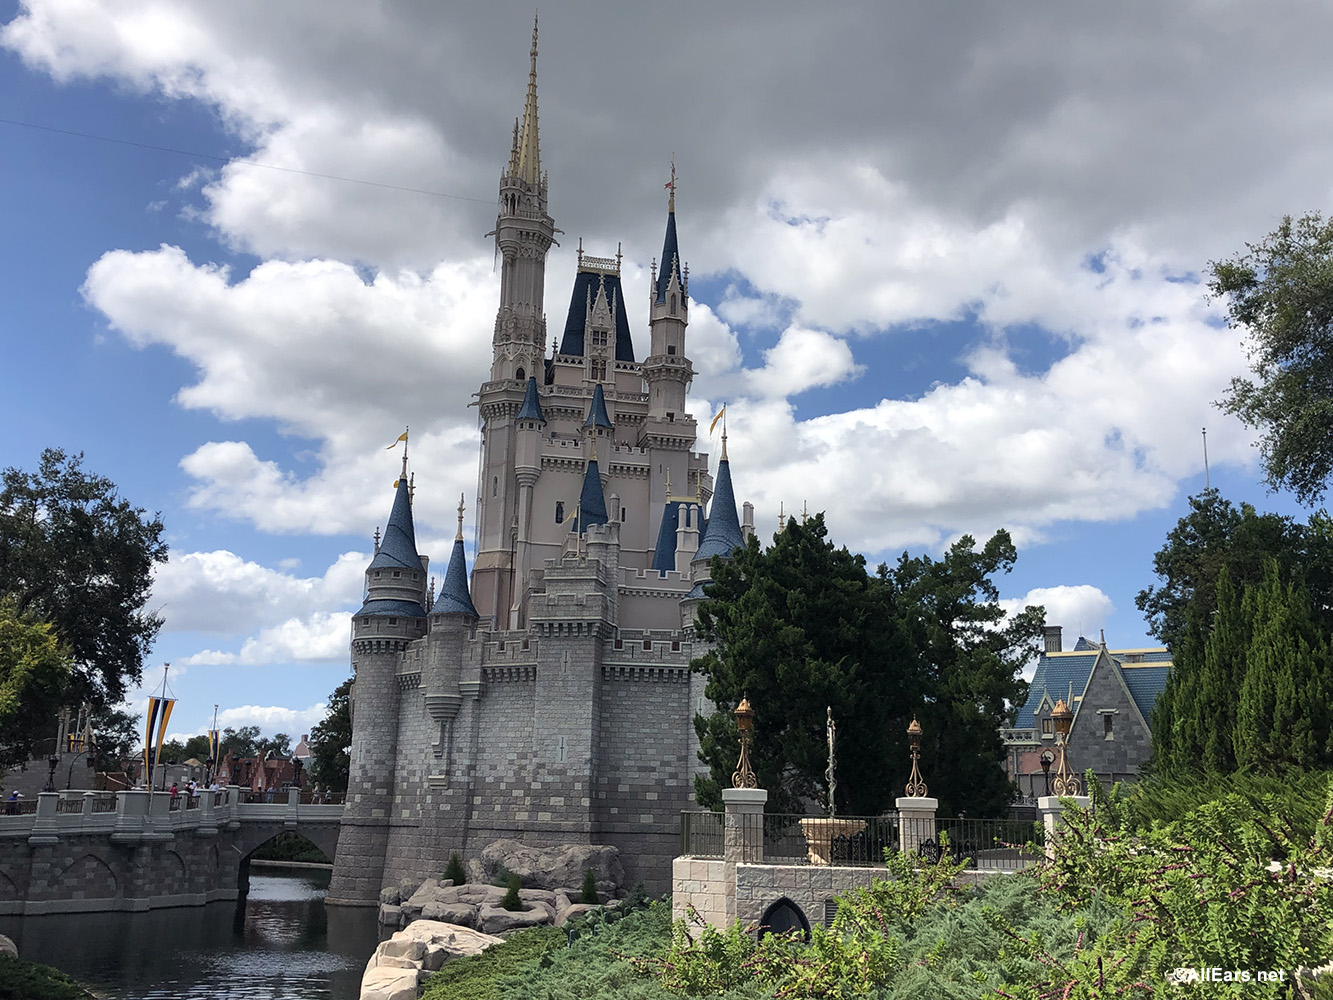 The Best All You Care To Eat Restaurants at Walt Disney World - AllEars.Net